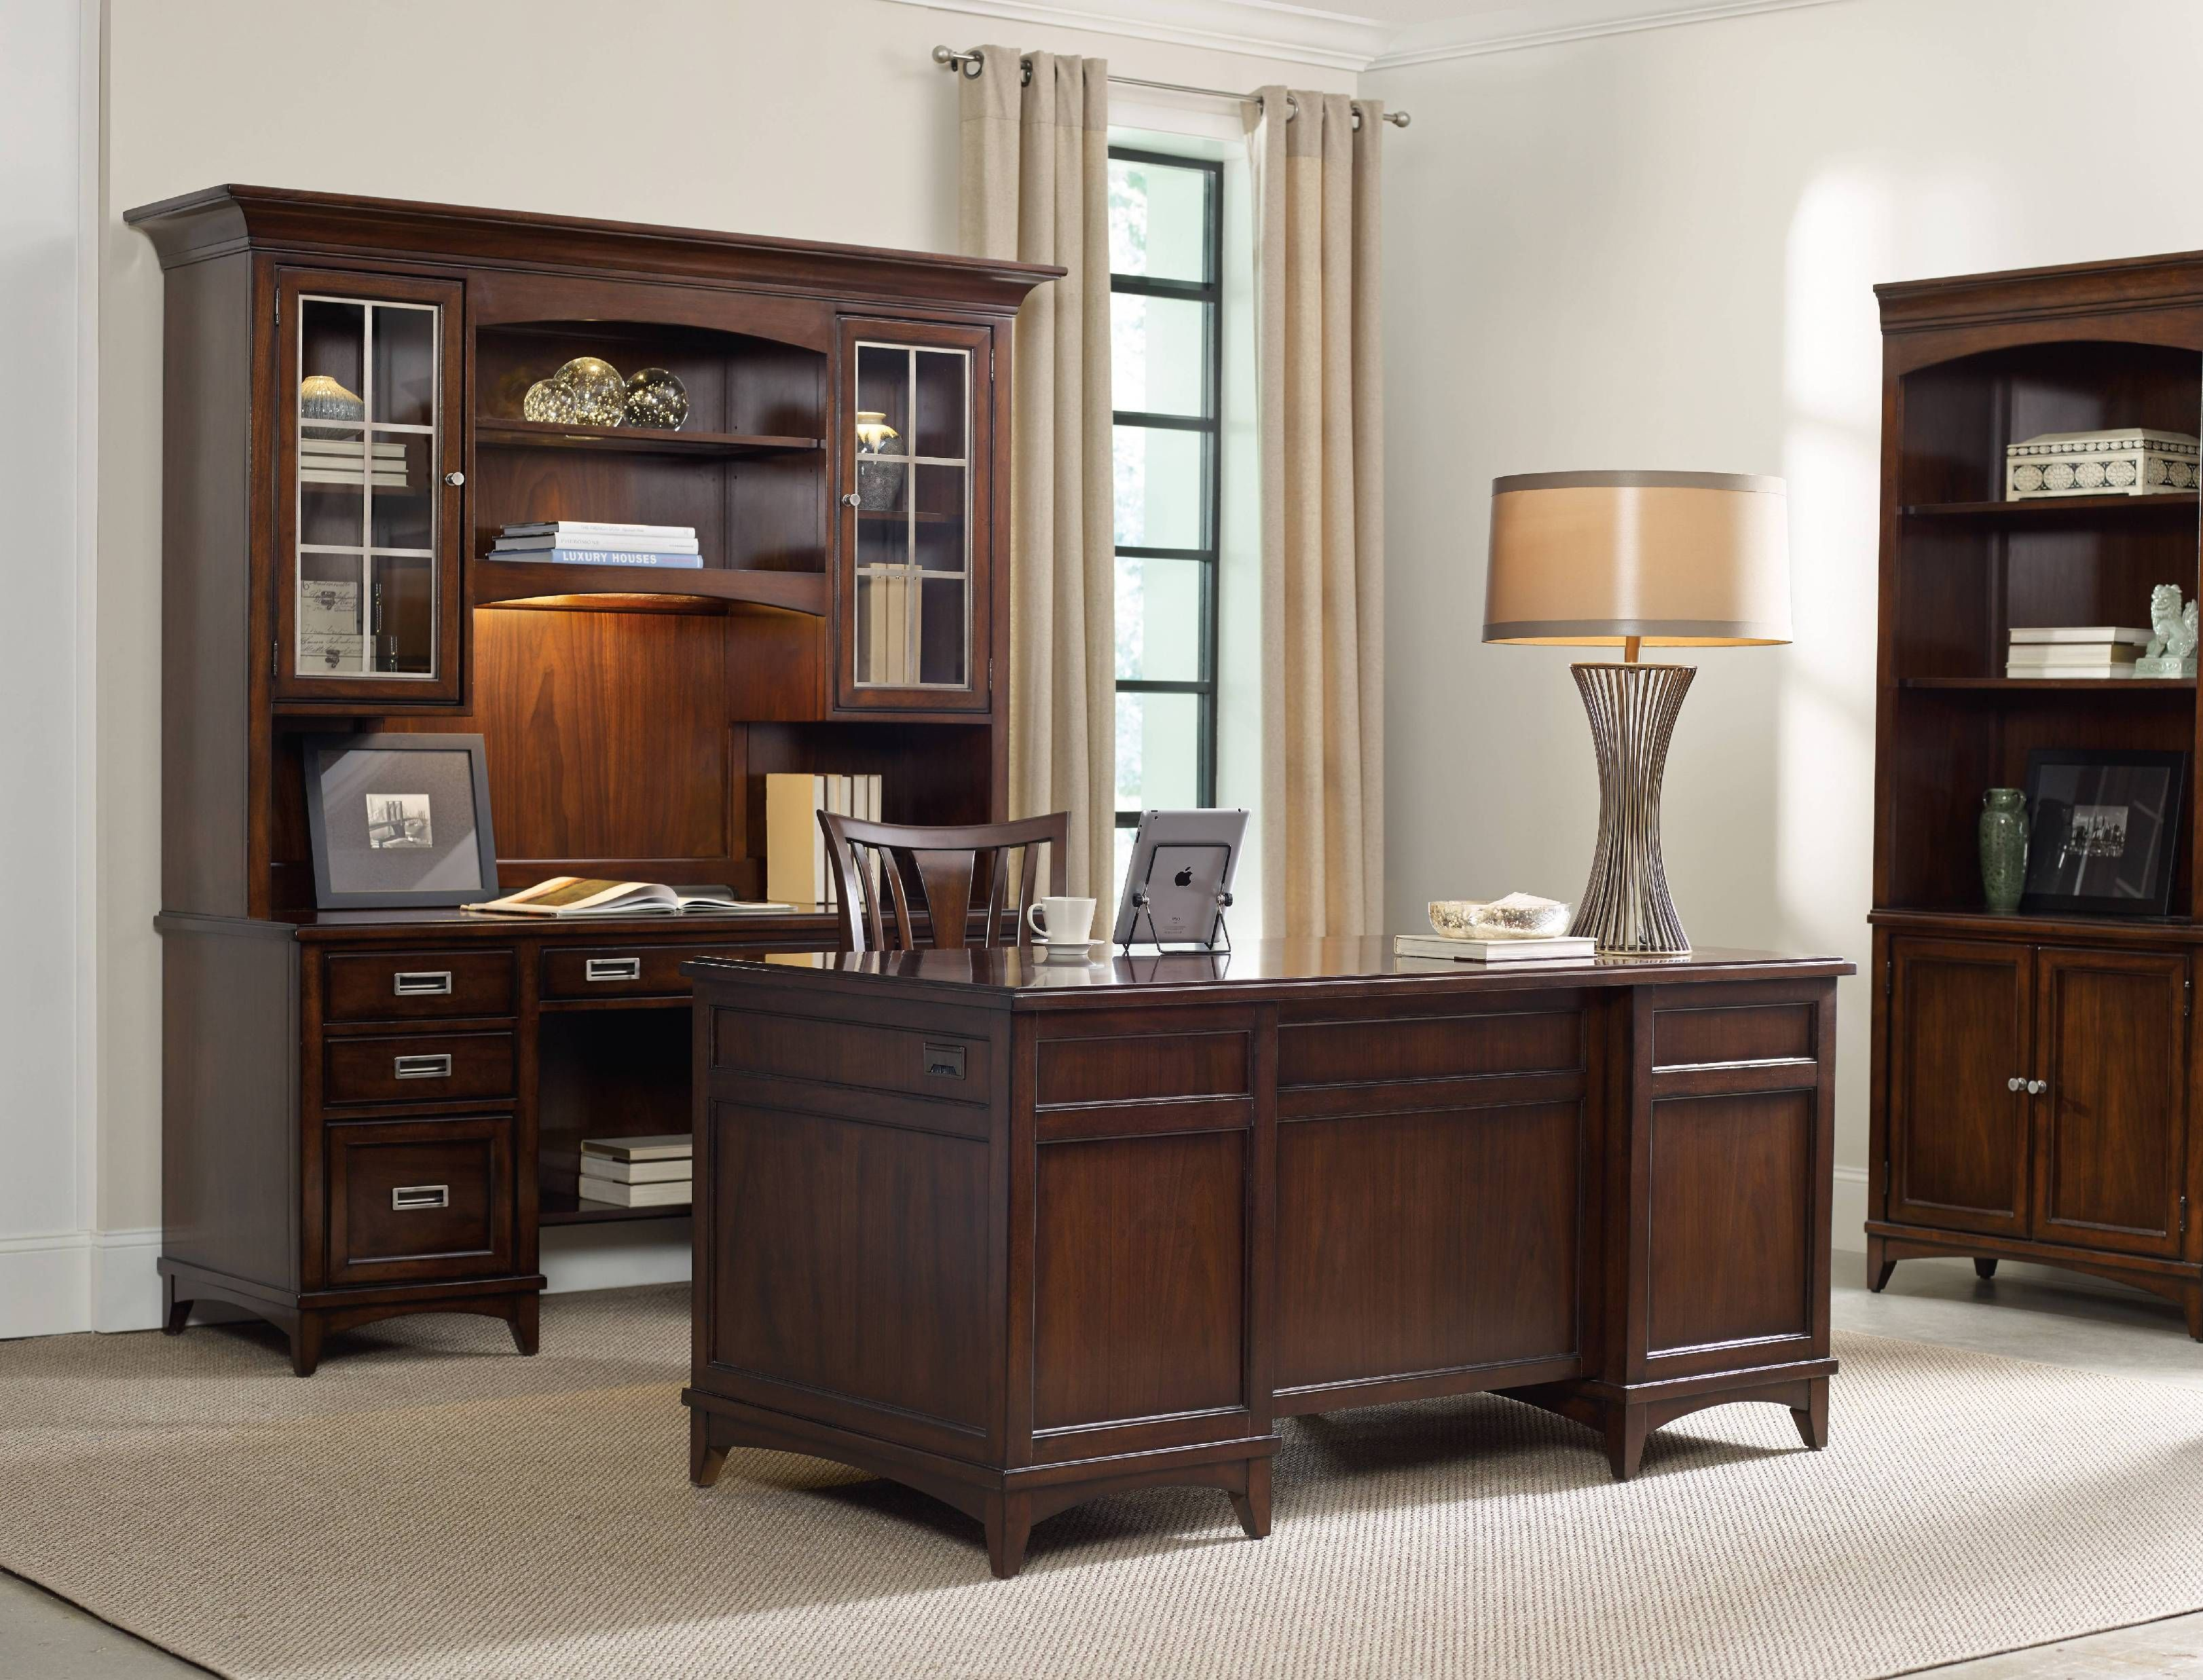 Hooker Furniture Home Office Unique Hooker Furniture Home Office Latitude Executive Desk 516710562 . 2017